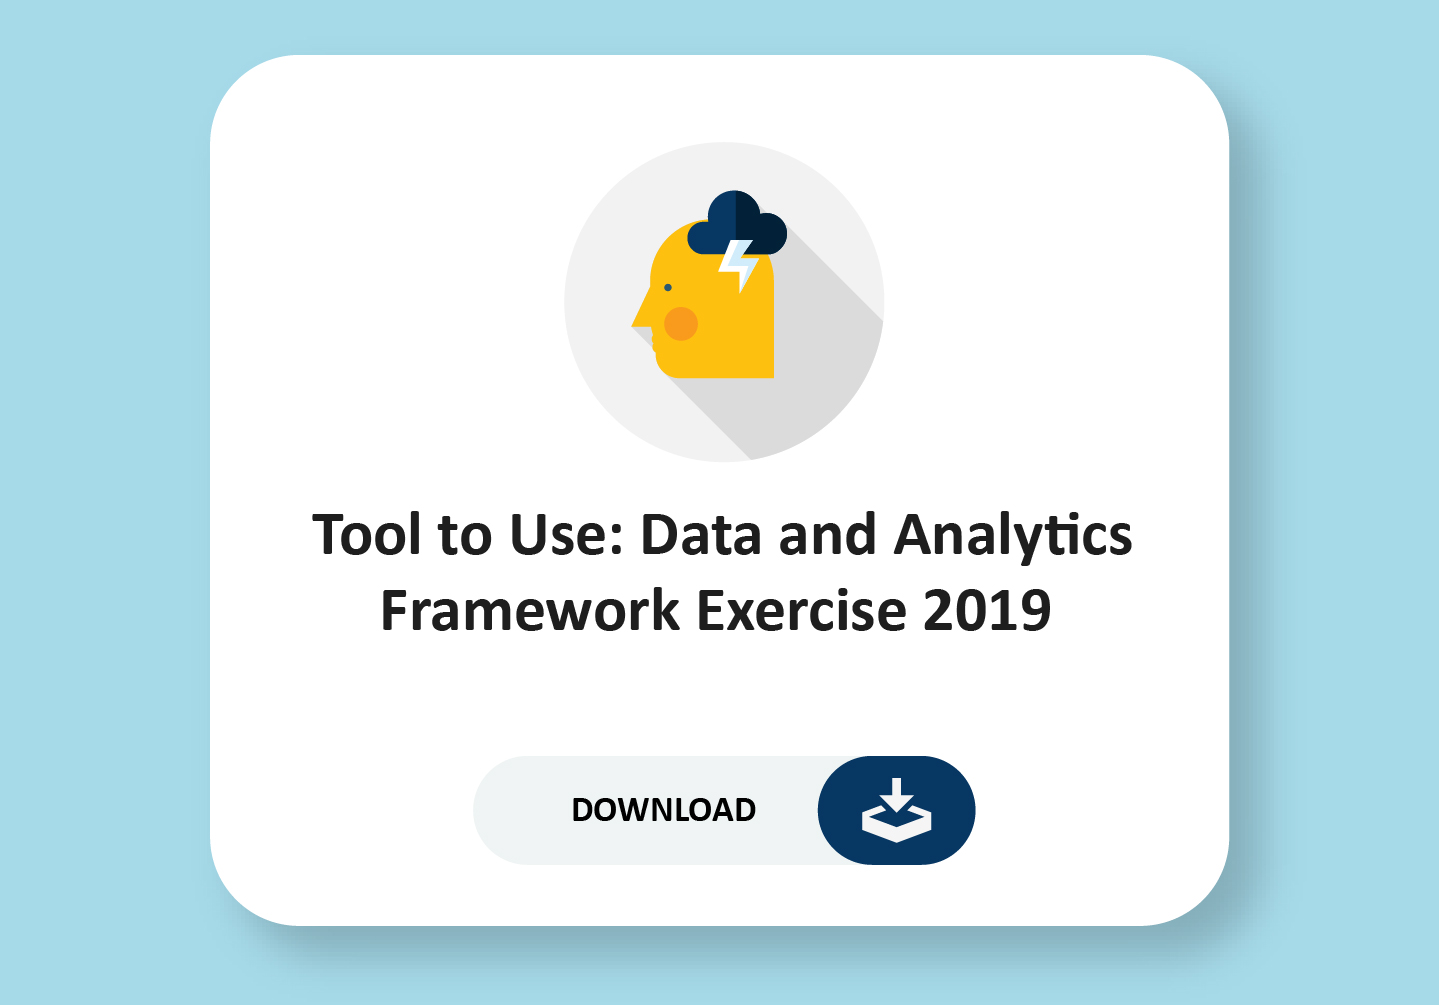 Data and Analytics framework